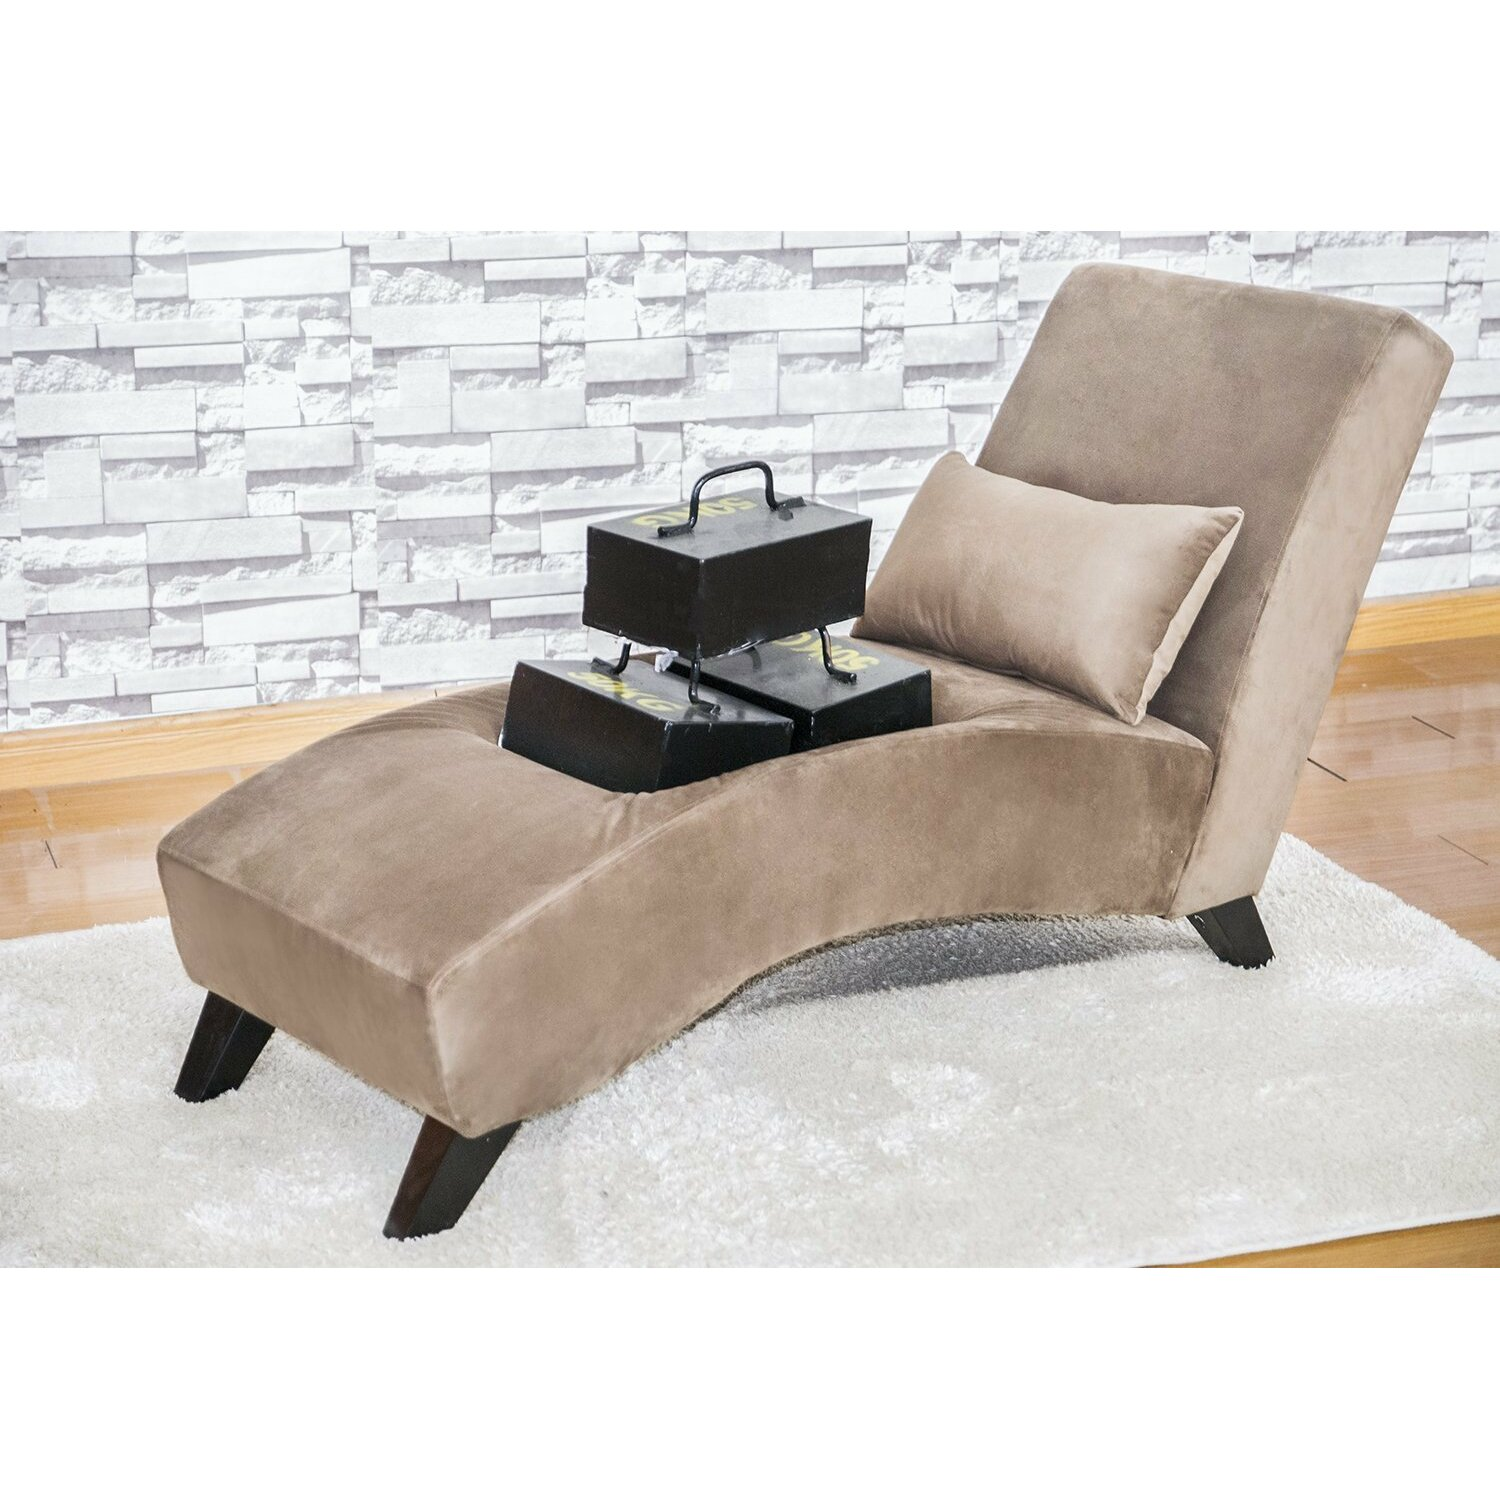 Merax classic chaise lounge reviews wayfair for Brown microfiber chaise lounger